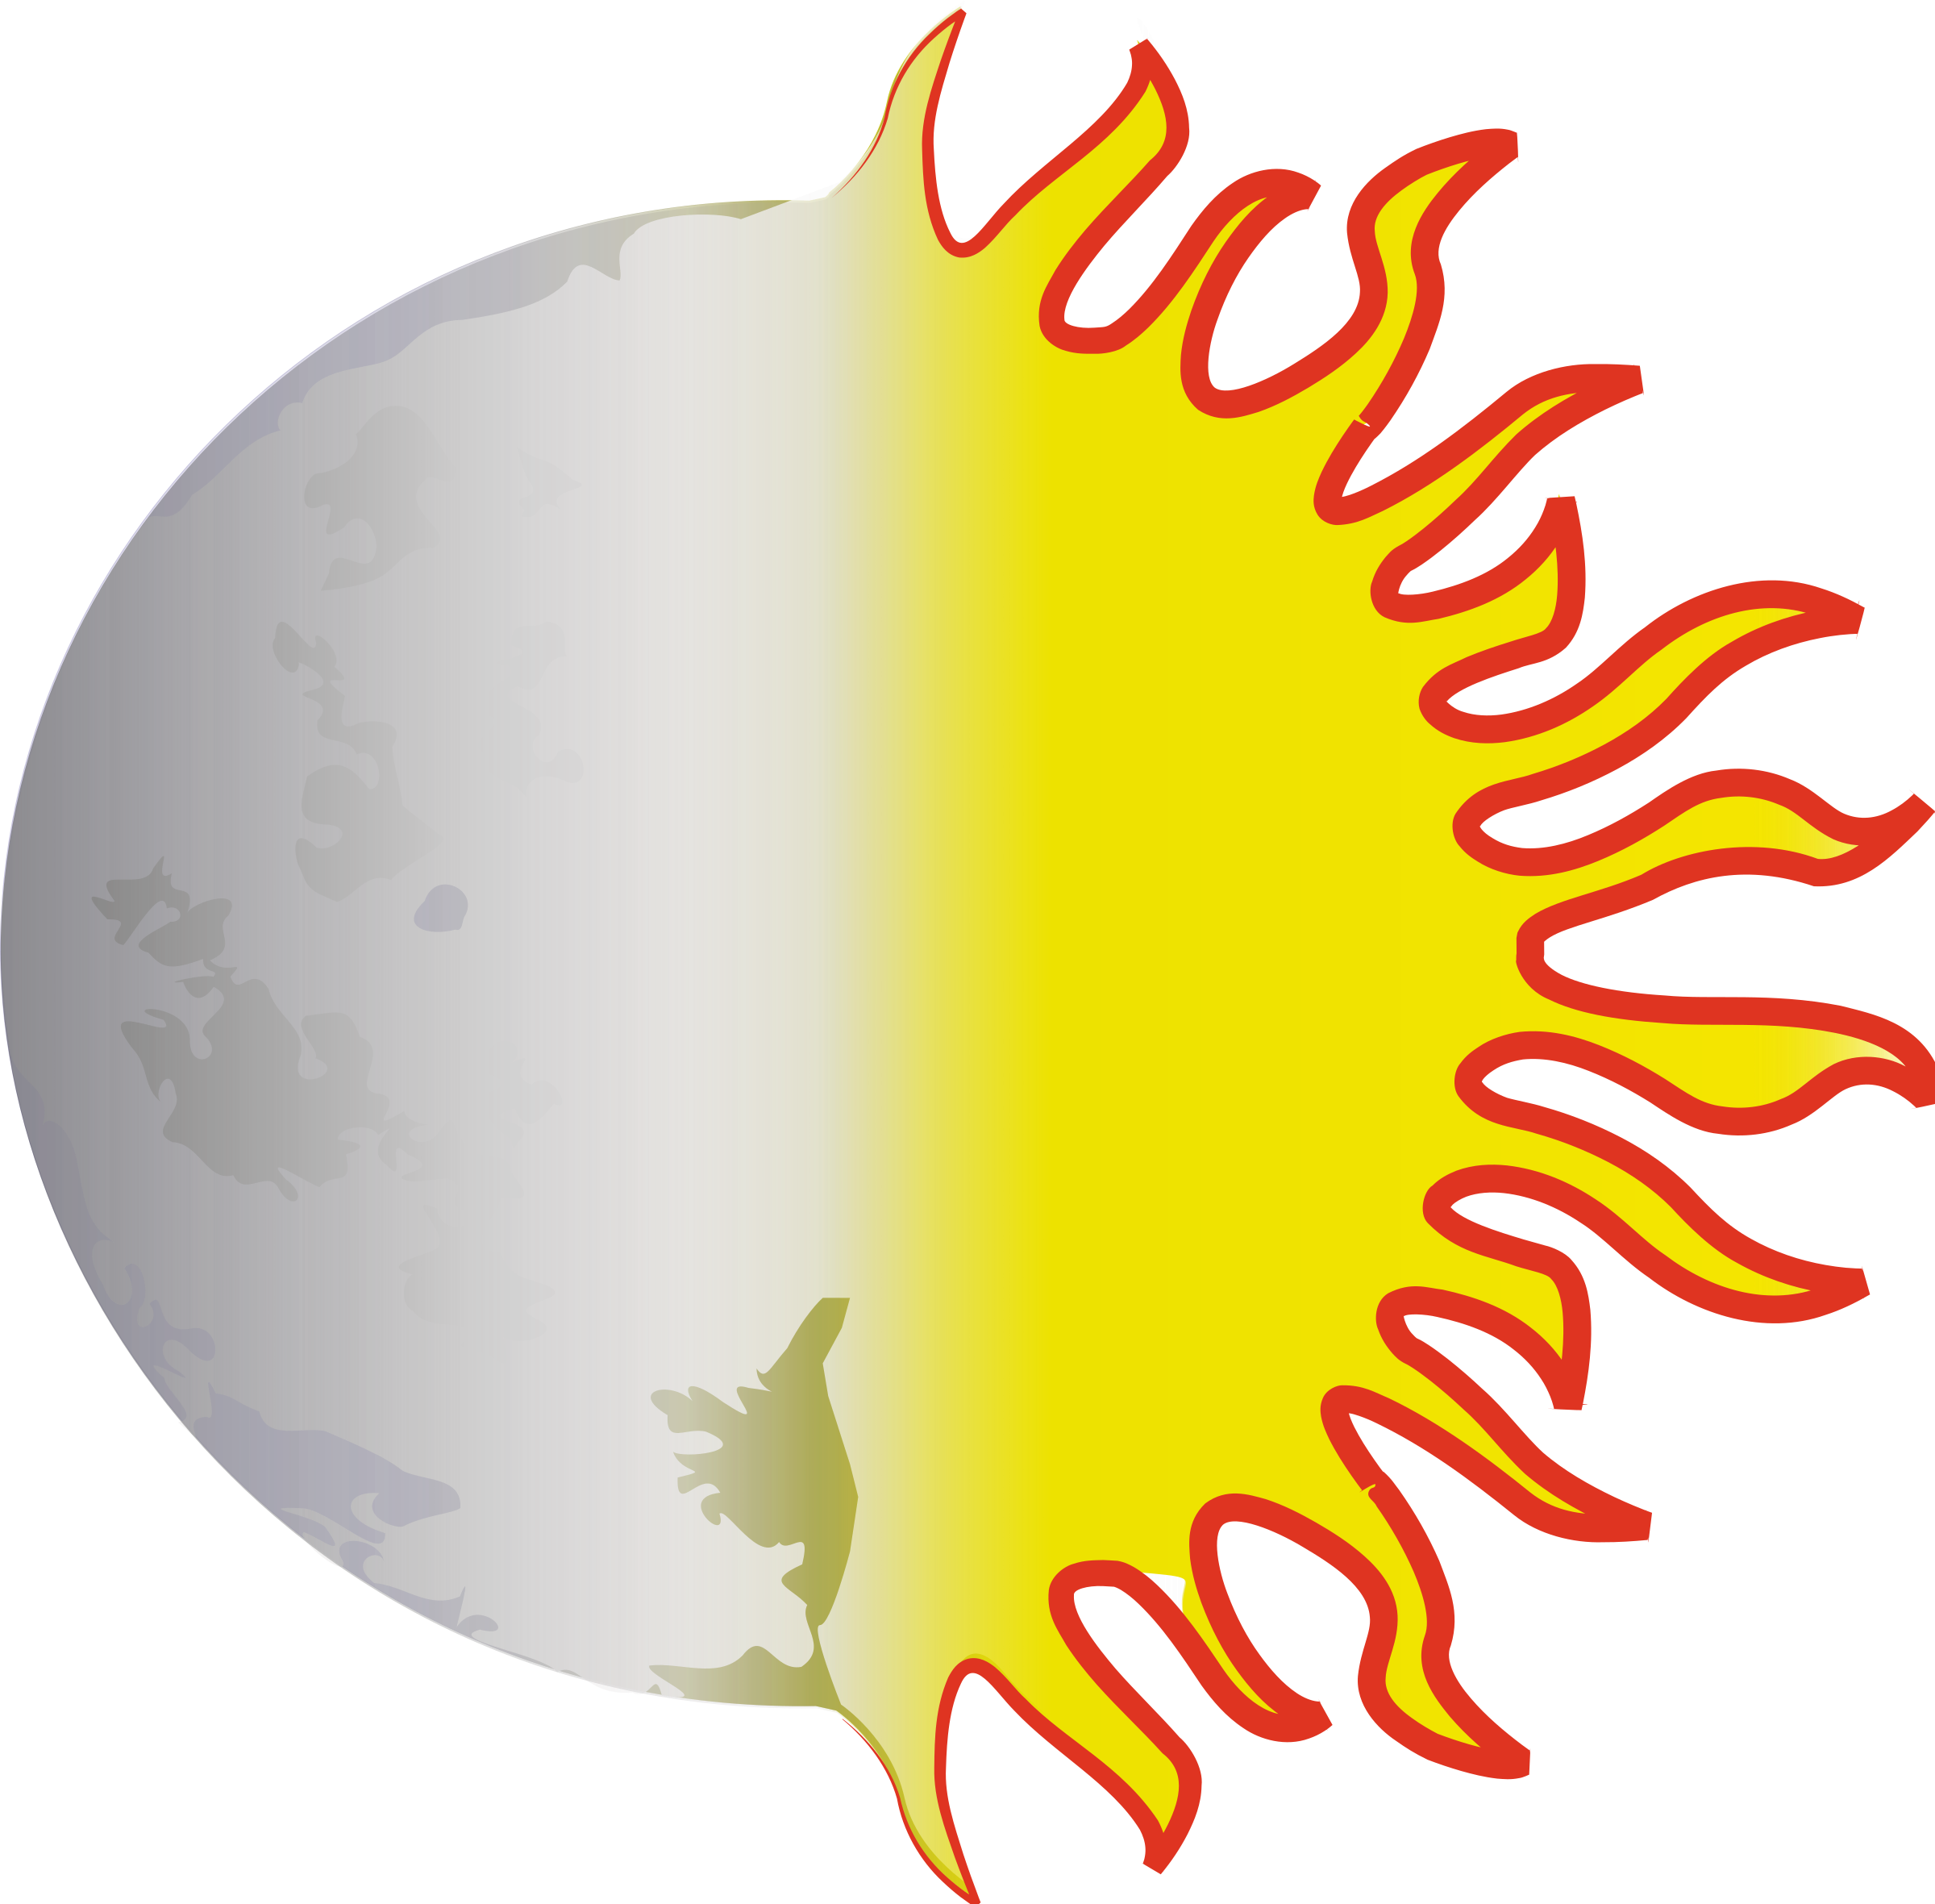 Sun and moon png. Icons free downloads this